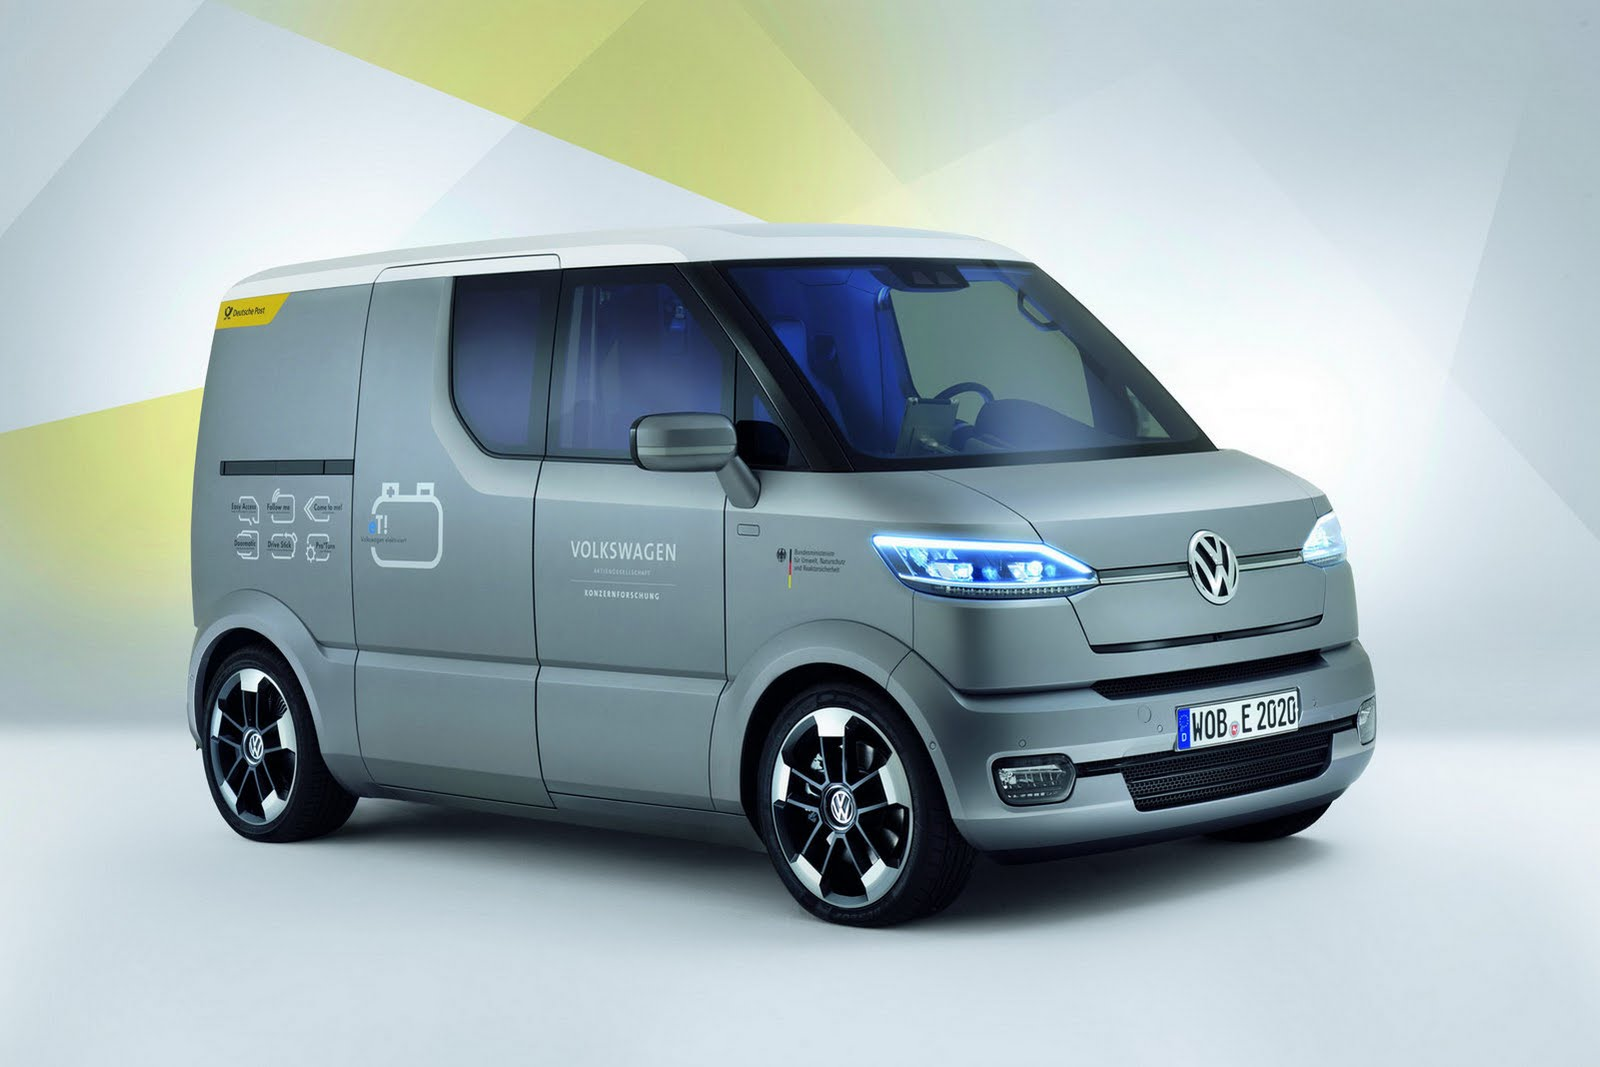 2011 volkswagen s new et concept van. Black Bedroom Furniture Sets. Home Design Ideas